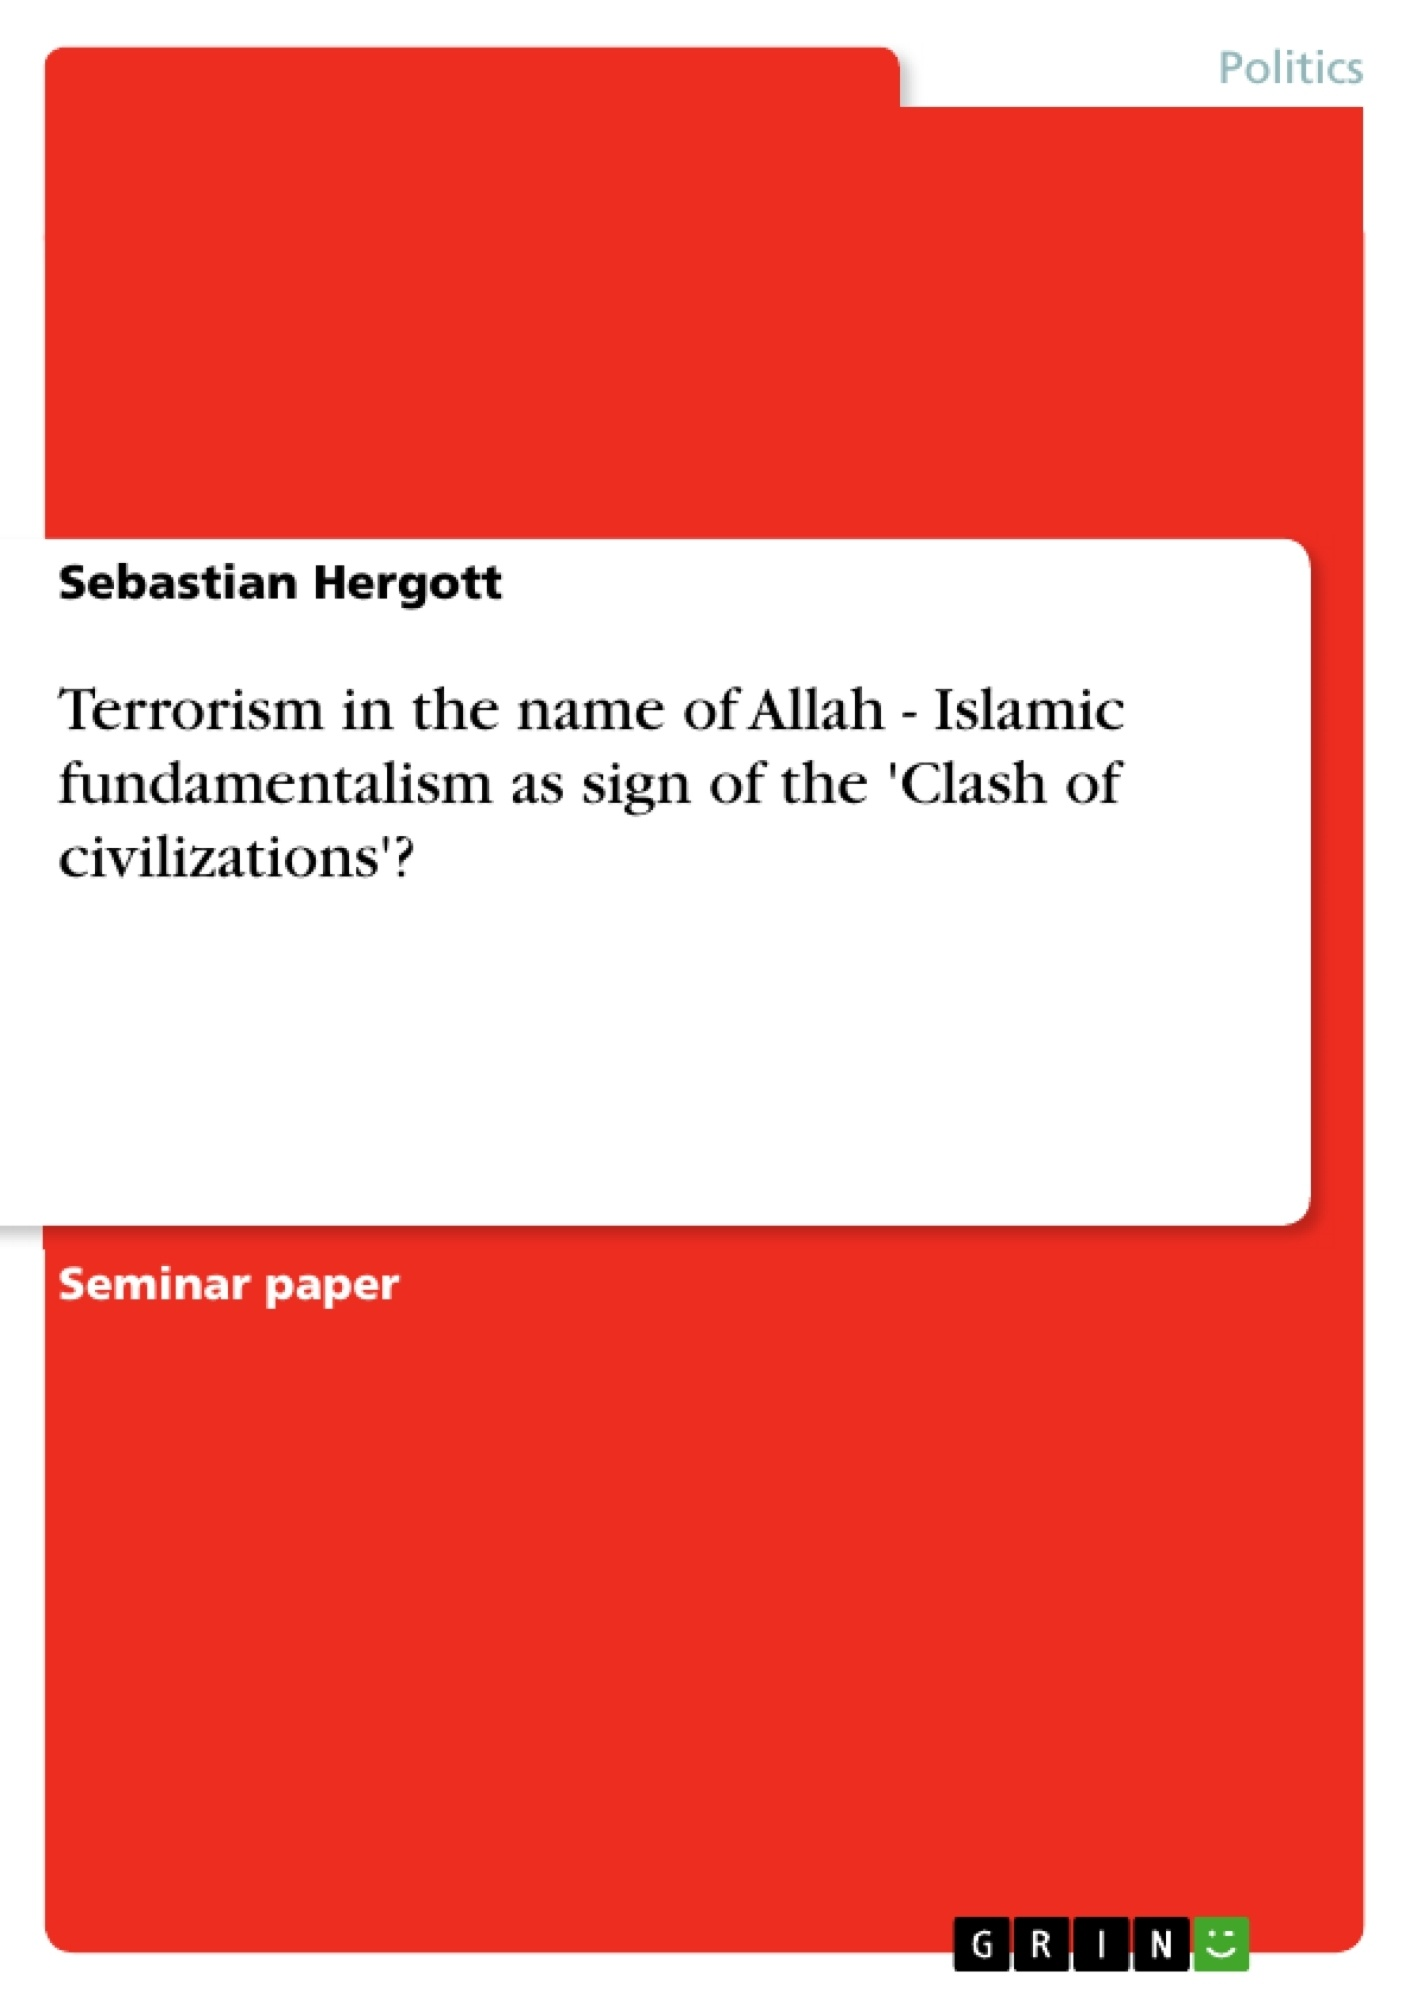 Title: Terrorism in the name of Allah - Islamic fundamentalism as sign of the 'Clash of civilizations'?